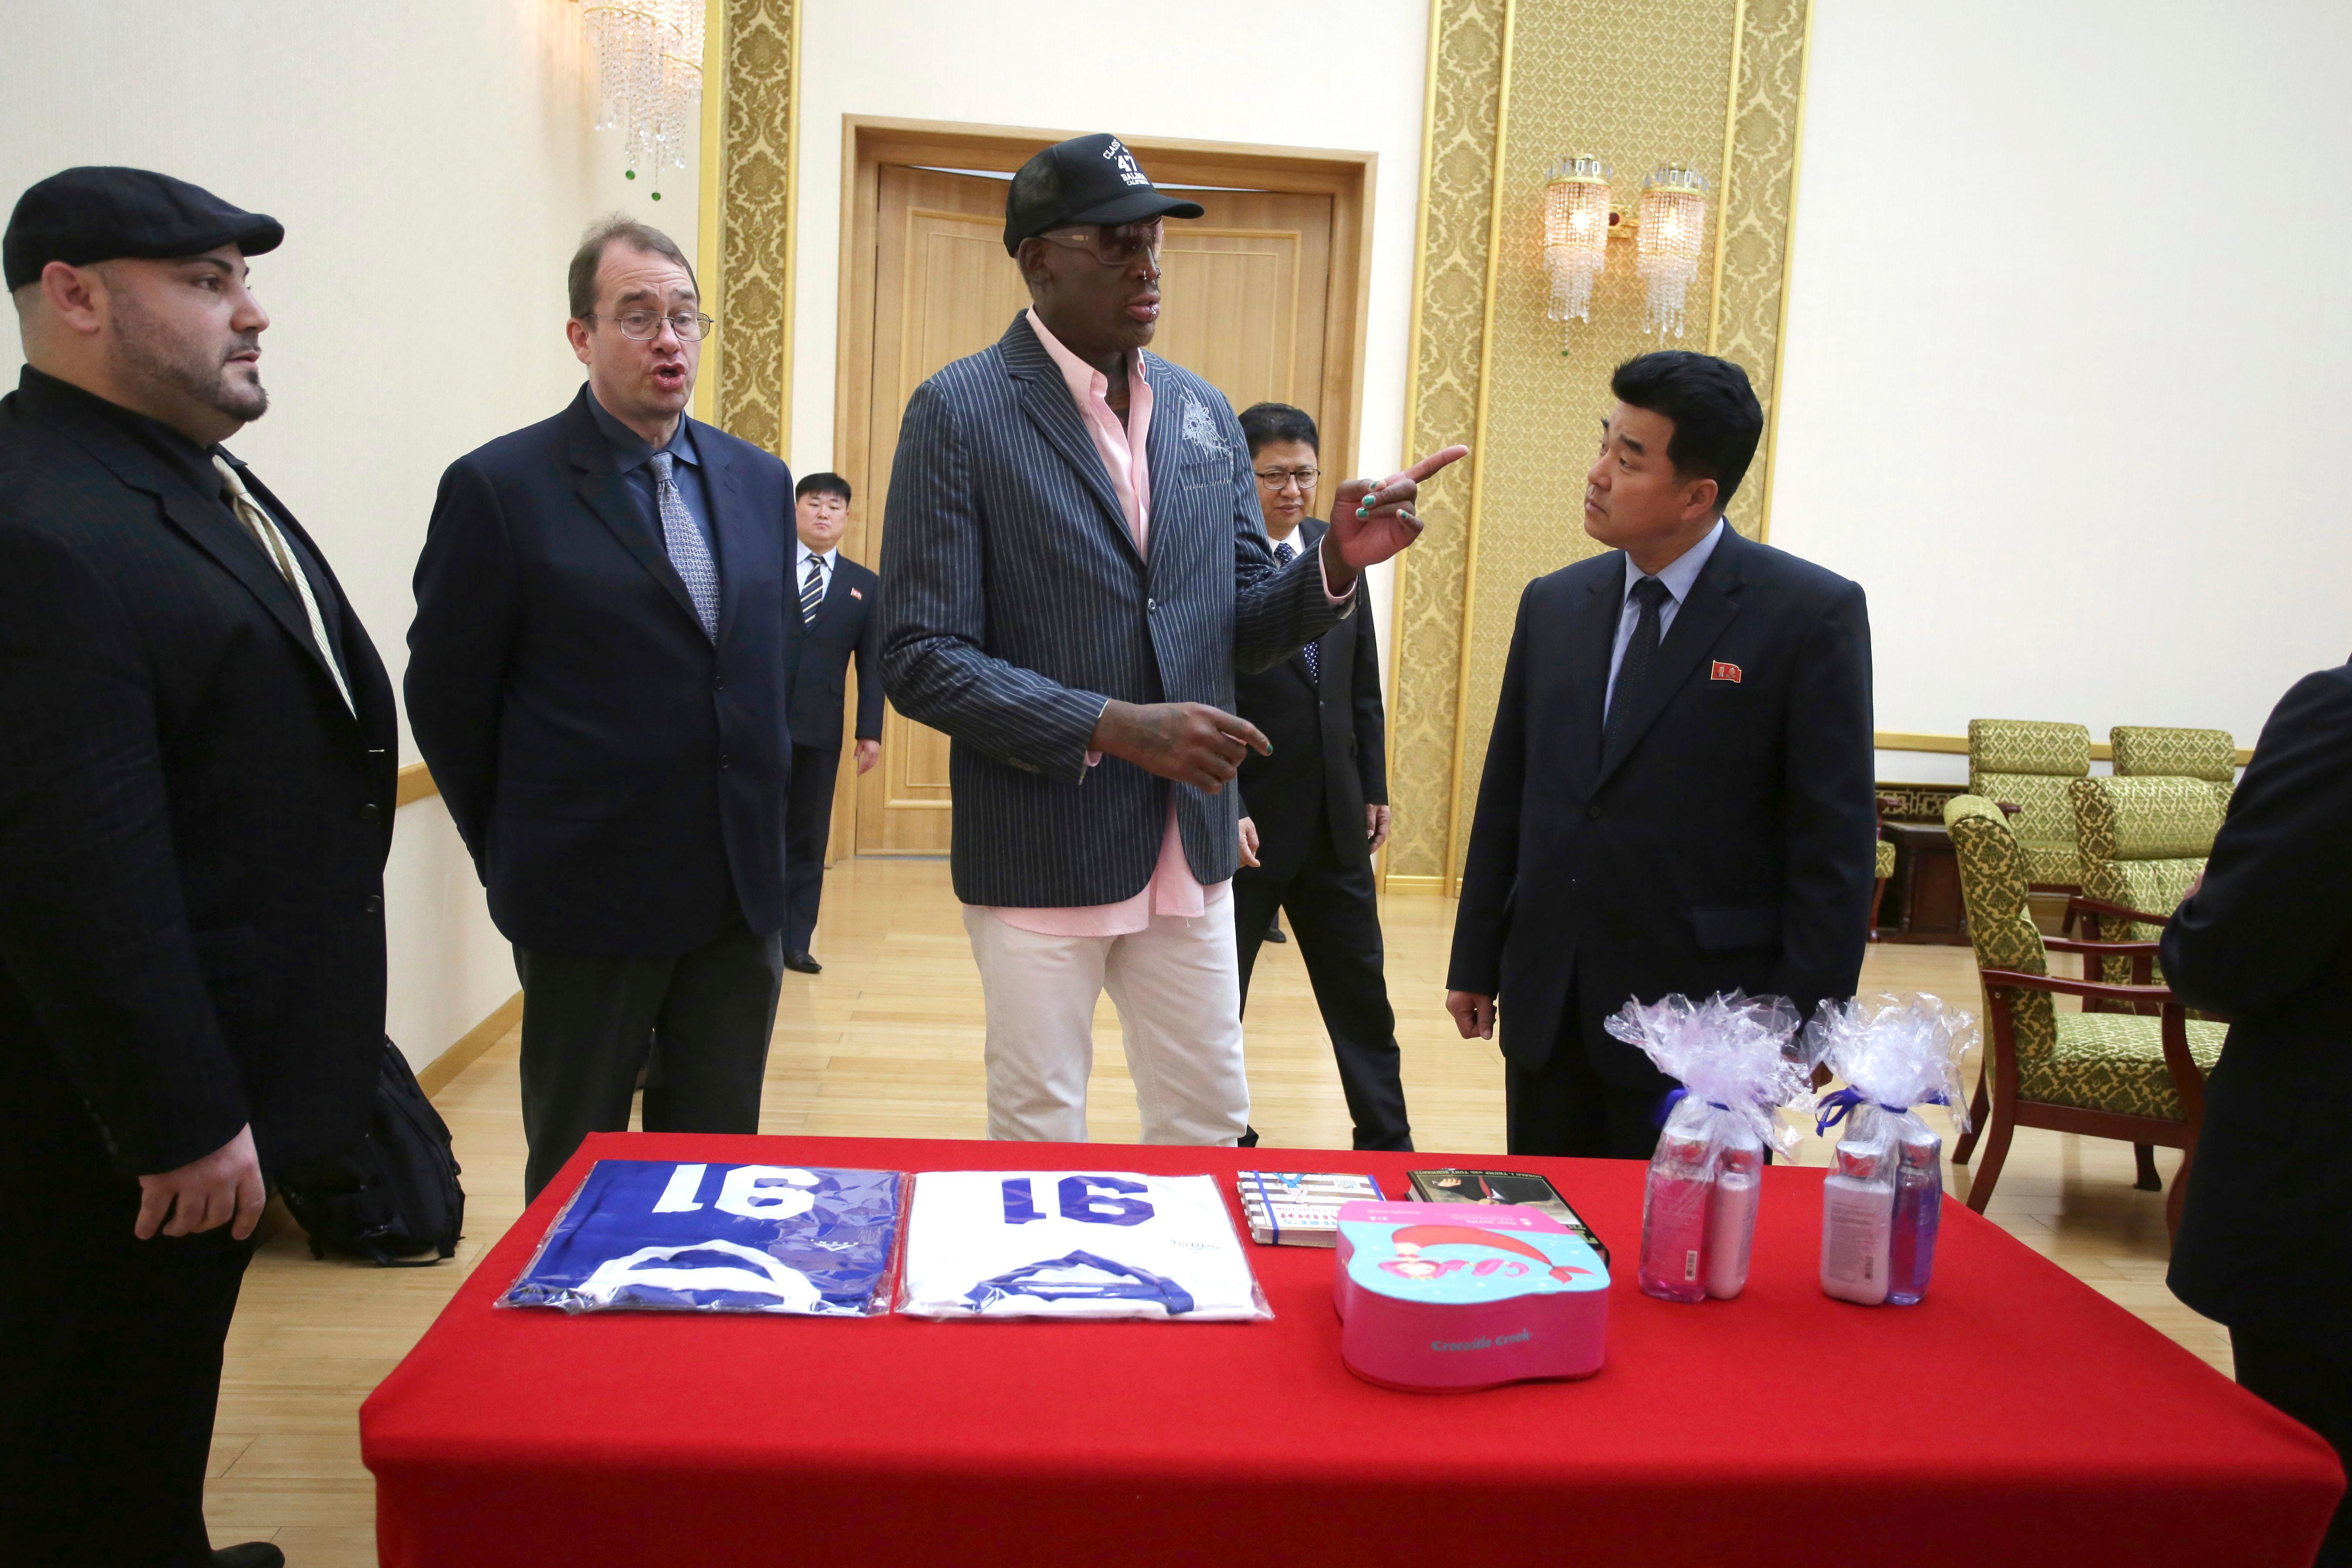 "Former NBA basketball star Dennis Rodman presents gifts comprising of autographed basketball jerseys, bath soaps and two books, titled ""Where's Waldo?"" and ""Trump The Art of the Deal"" to North Korea's Sports Minister Kim Il Guk, right, Thursday, June 15, 2017, in Pyongyang, North Korea. Standing on his left is Joseph Terwilliger, Columbia University academic. (AP Photo/Kim Kwang Hyon)"